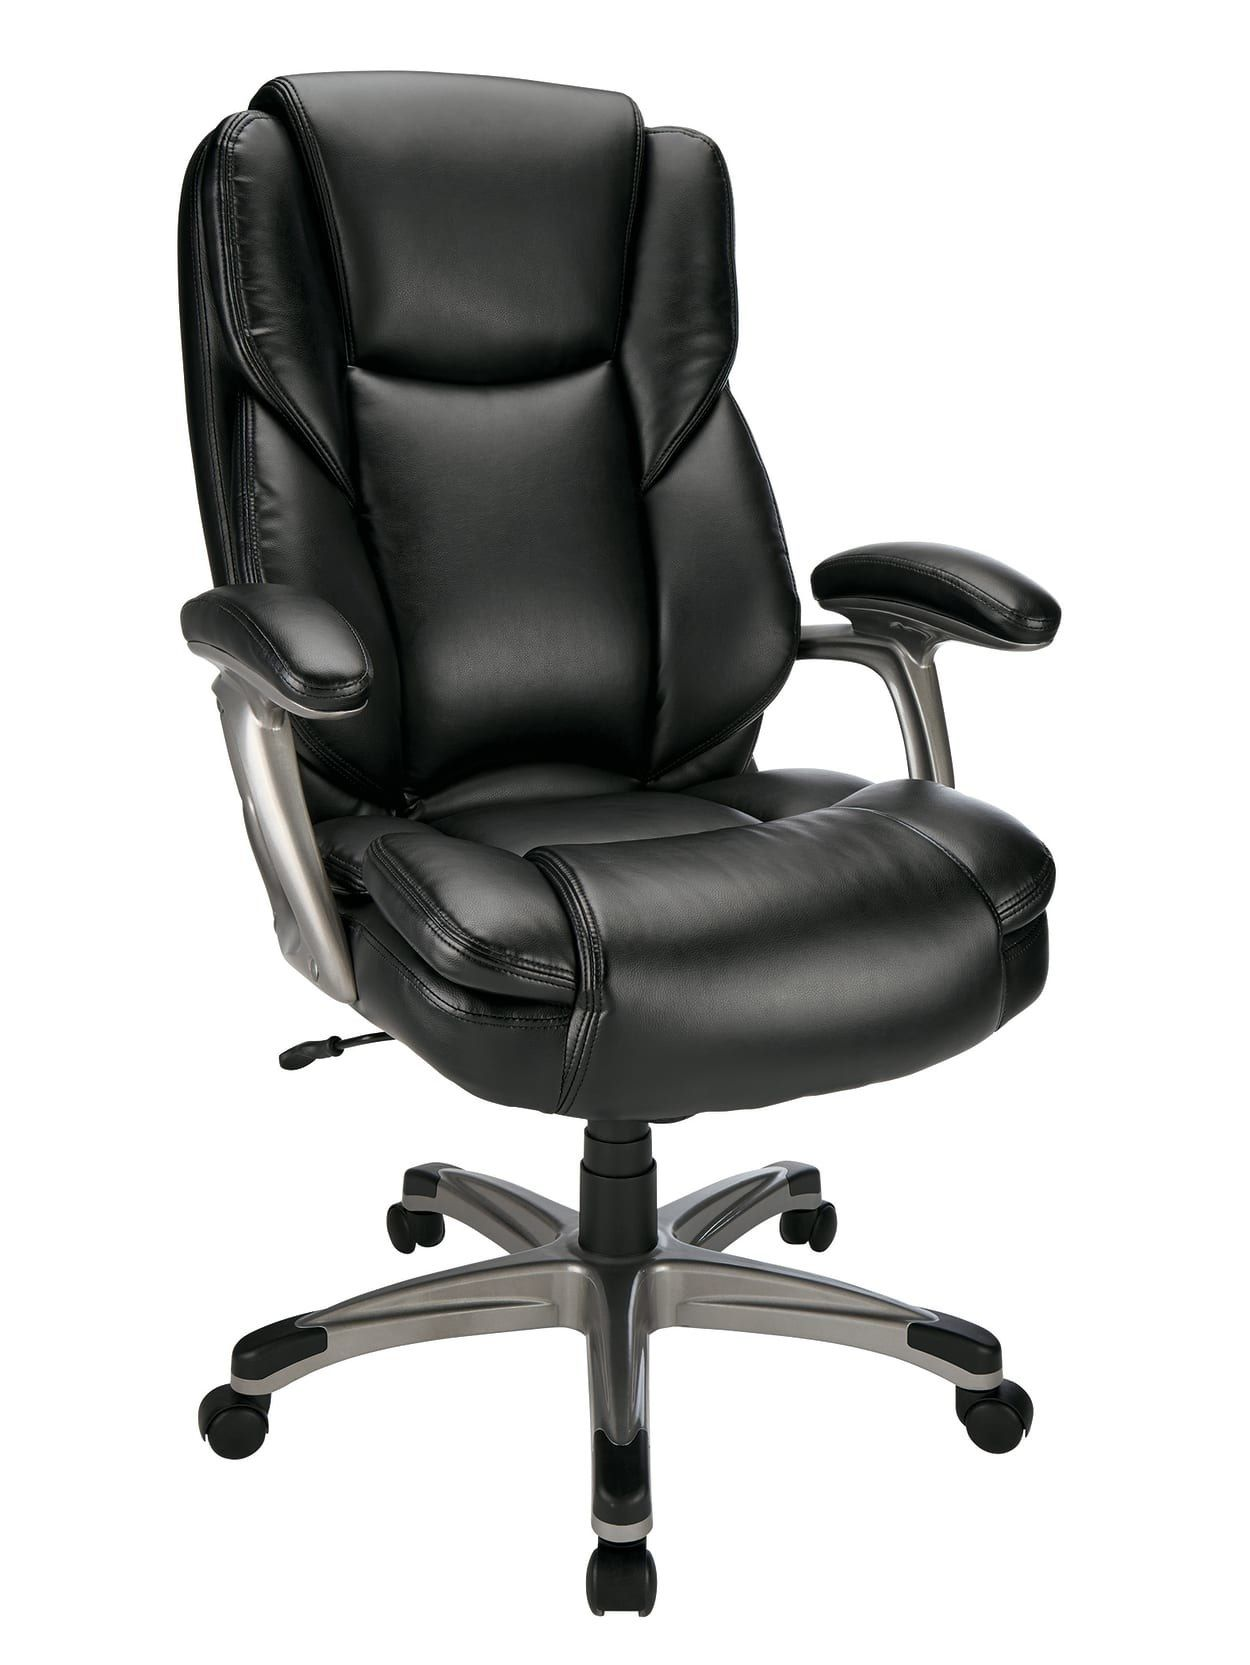 130 Off An Ergonomic Desk Chair To Upgrade Your Seating Situation Bonded Leather Chair High Back Chairs Leather Chair